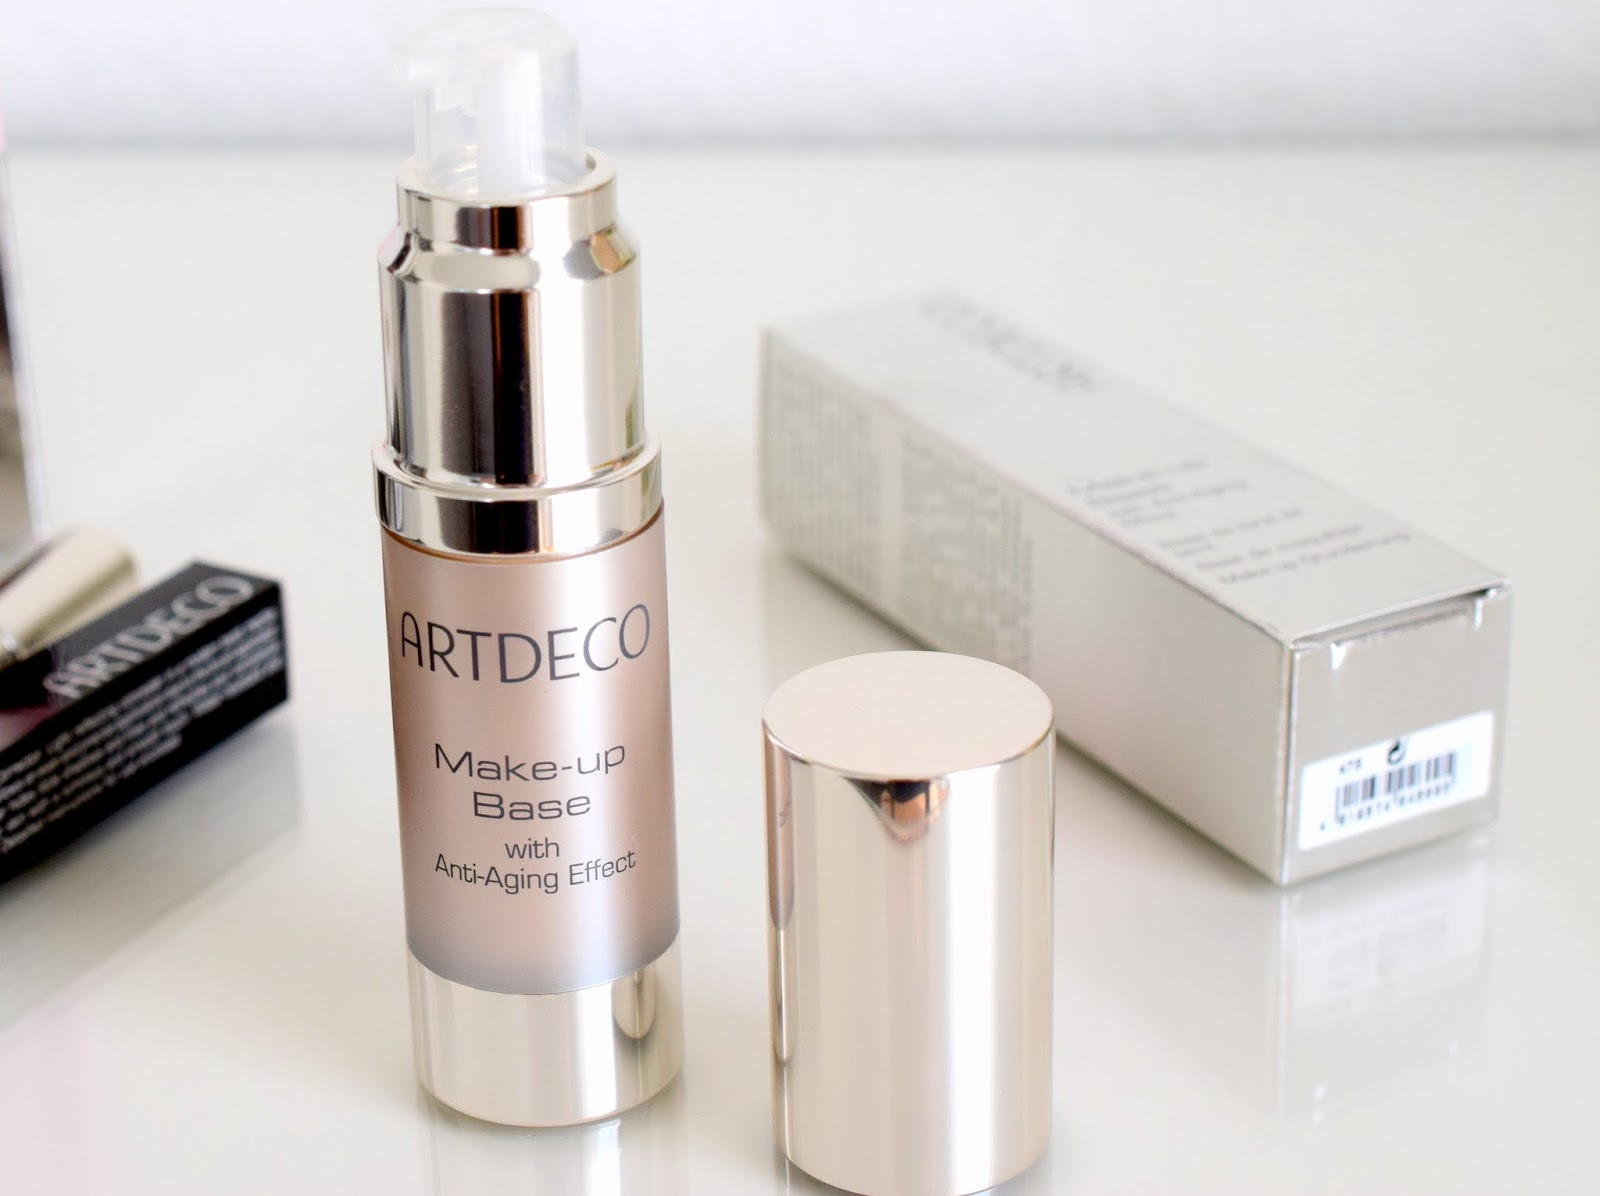 Artdeco Makeup Base with Anti-Aging Effect